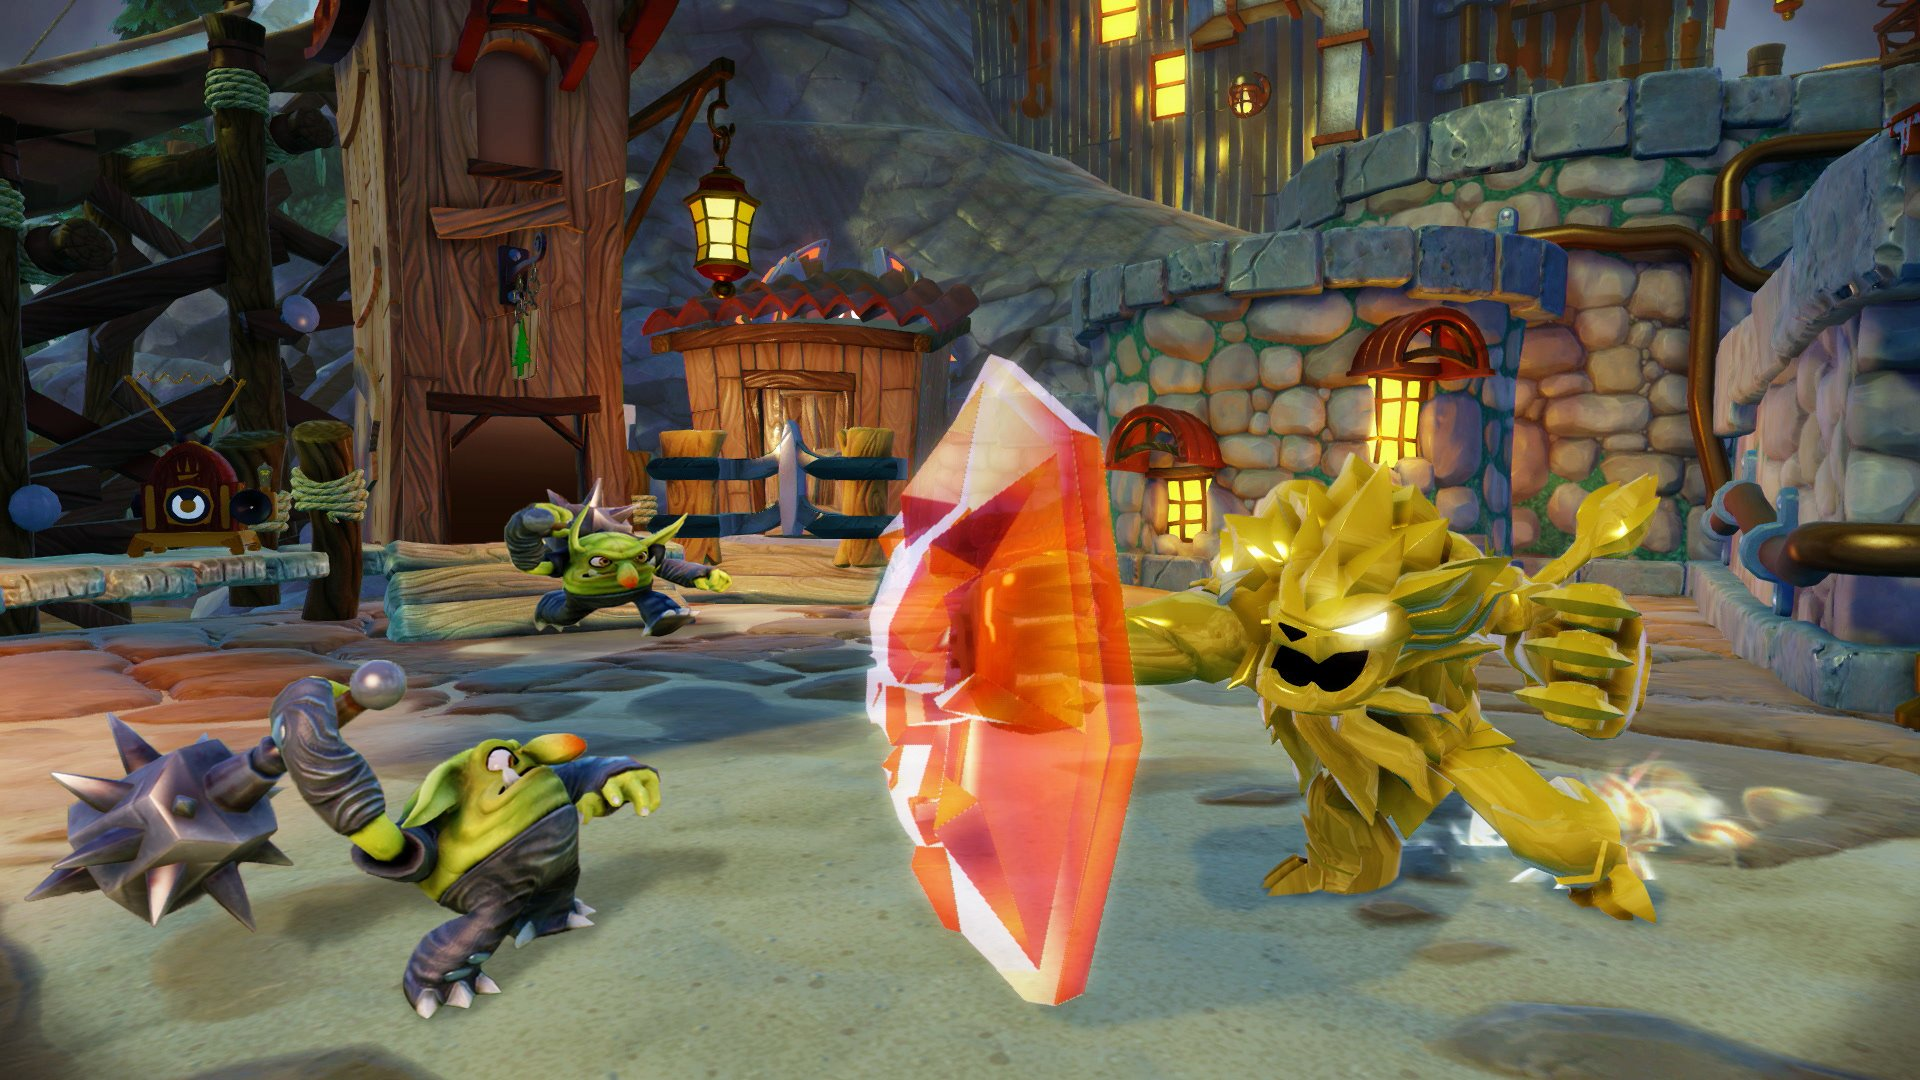 Skylanders Trap Team Is Coming To Wii, Wii U And 3DS This ...